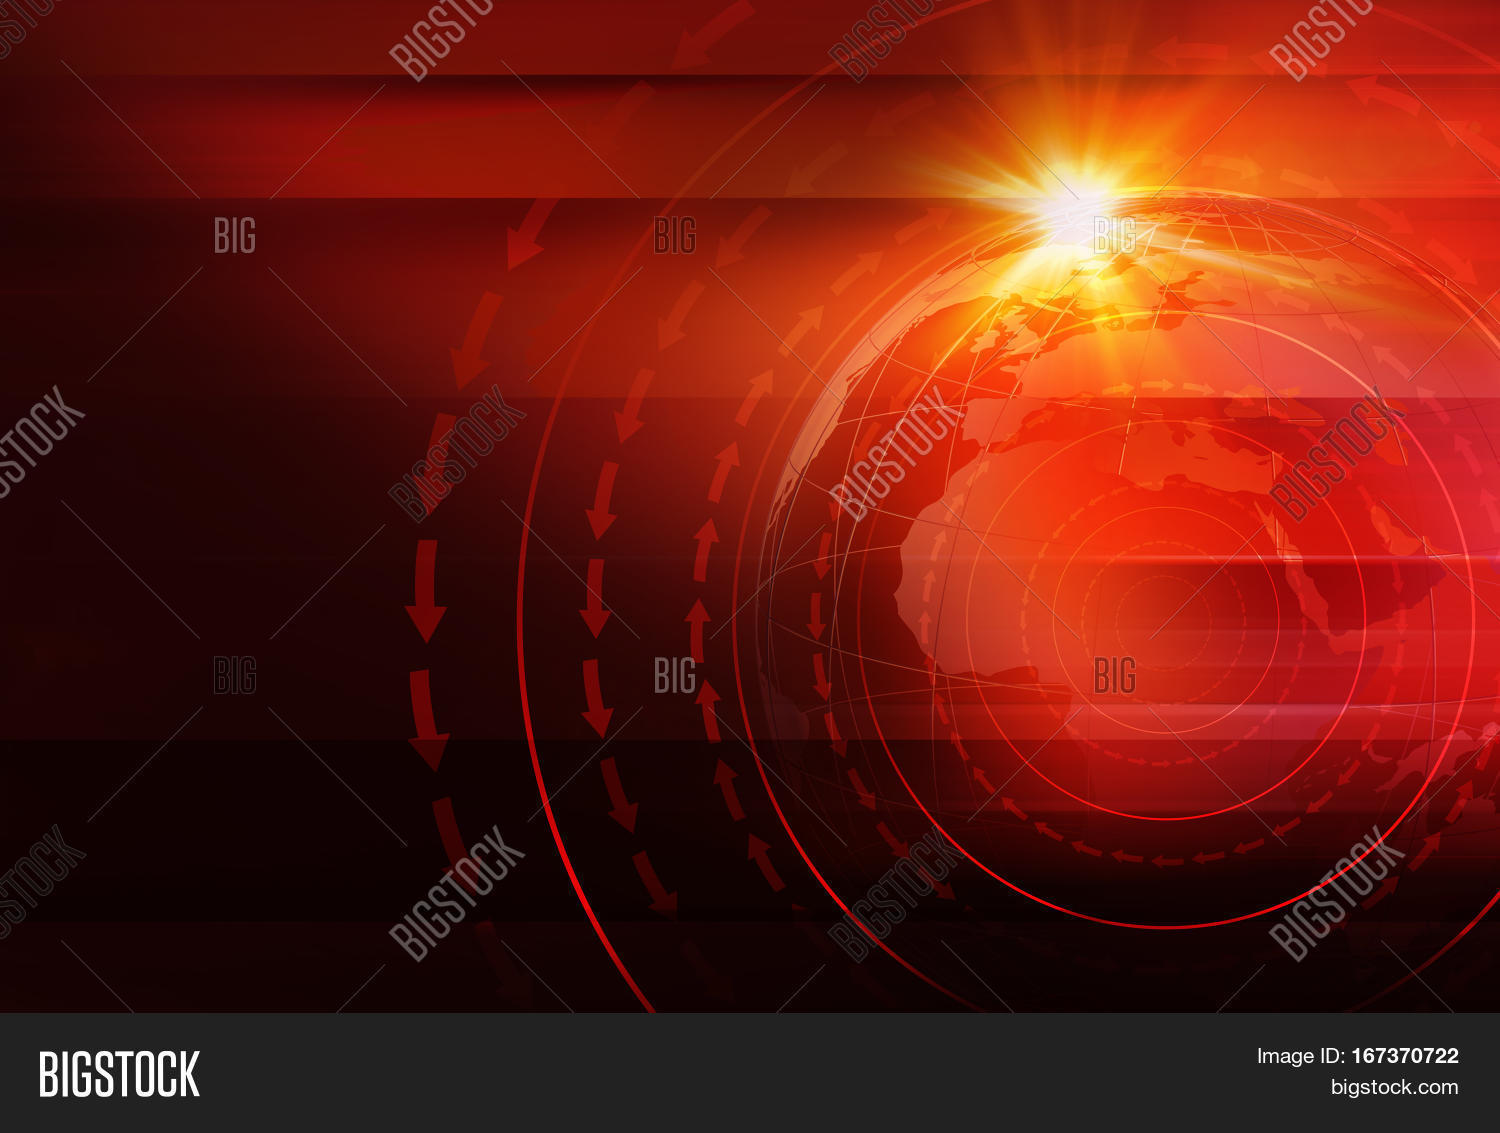 Graphical news background world map image photo bigstock graphical news background with world map and round circles and direction around the erath globe gumiabroncs Images